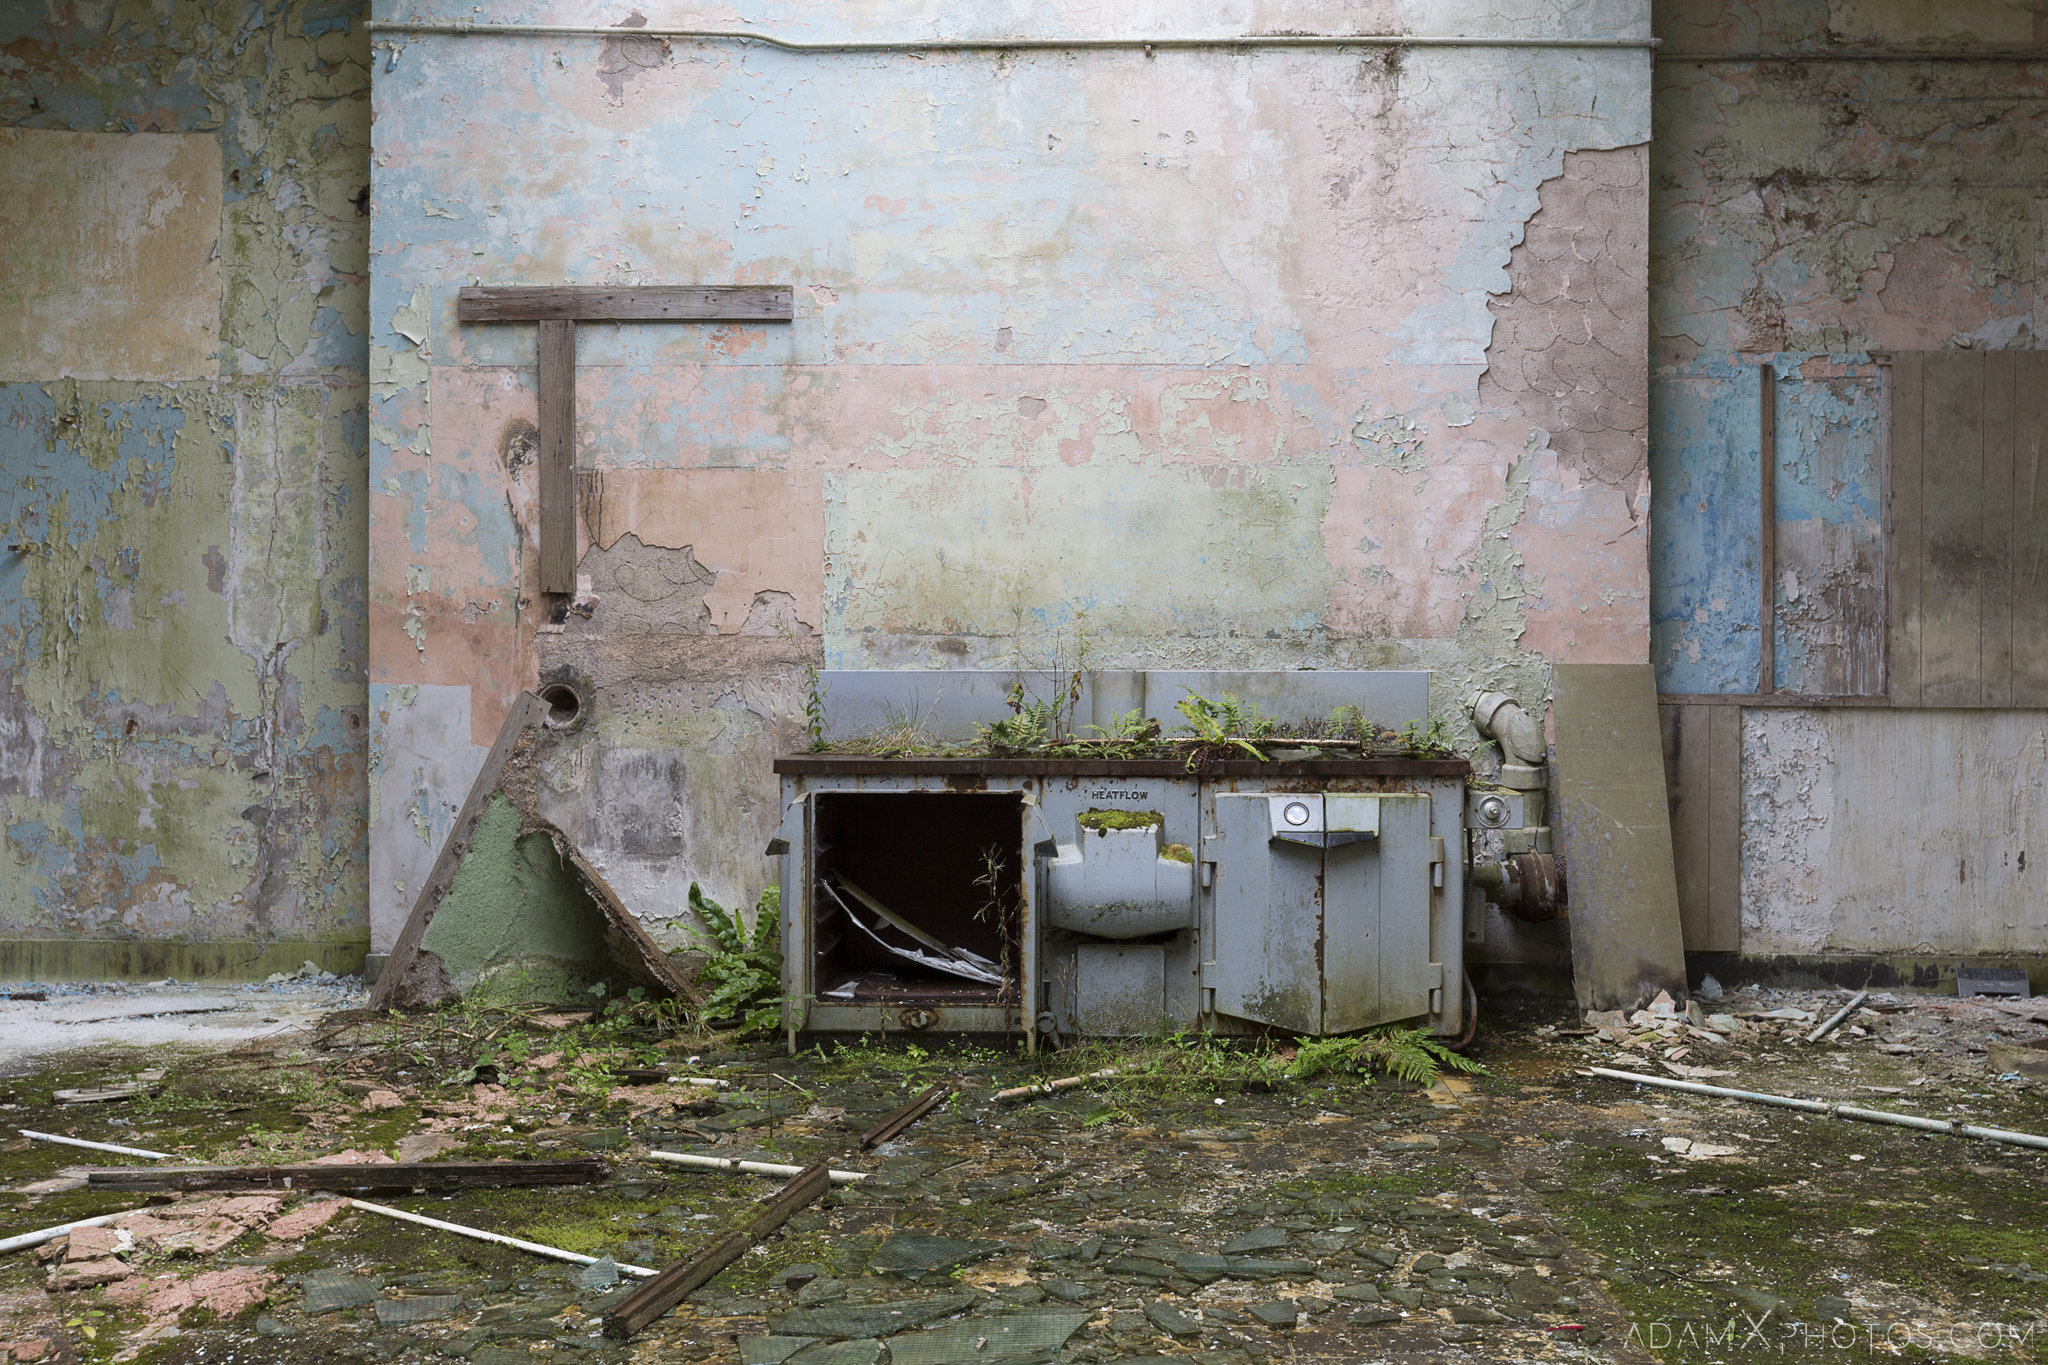 Old kitchen oven De Salle College School Colaiste Iosagain Ballyvourney County Cork Adam X Urbex Urban Exploration Ireland Access 2017 Abandoned decay lost forgotten derelict location creepy haunting eerie